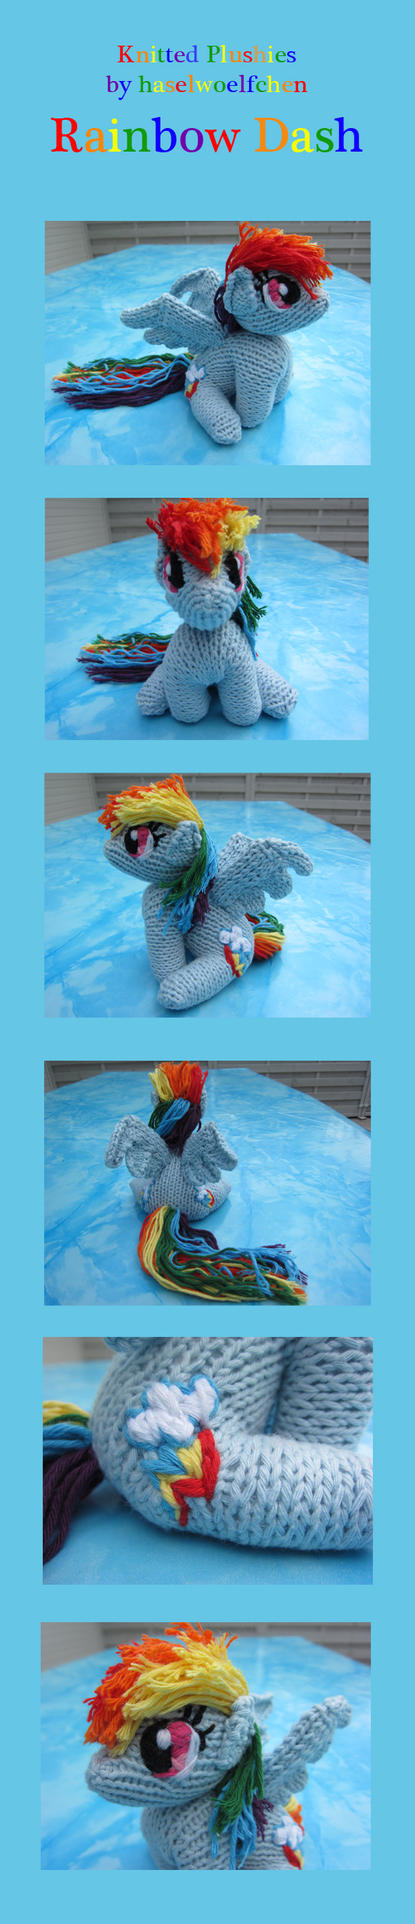 Knitted Plushies - Rainbow Dash (new colours) by haselwoelfchen